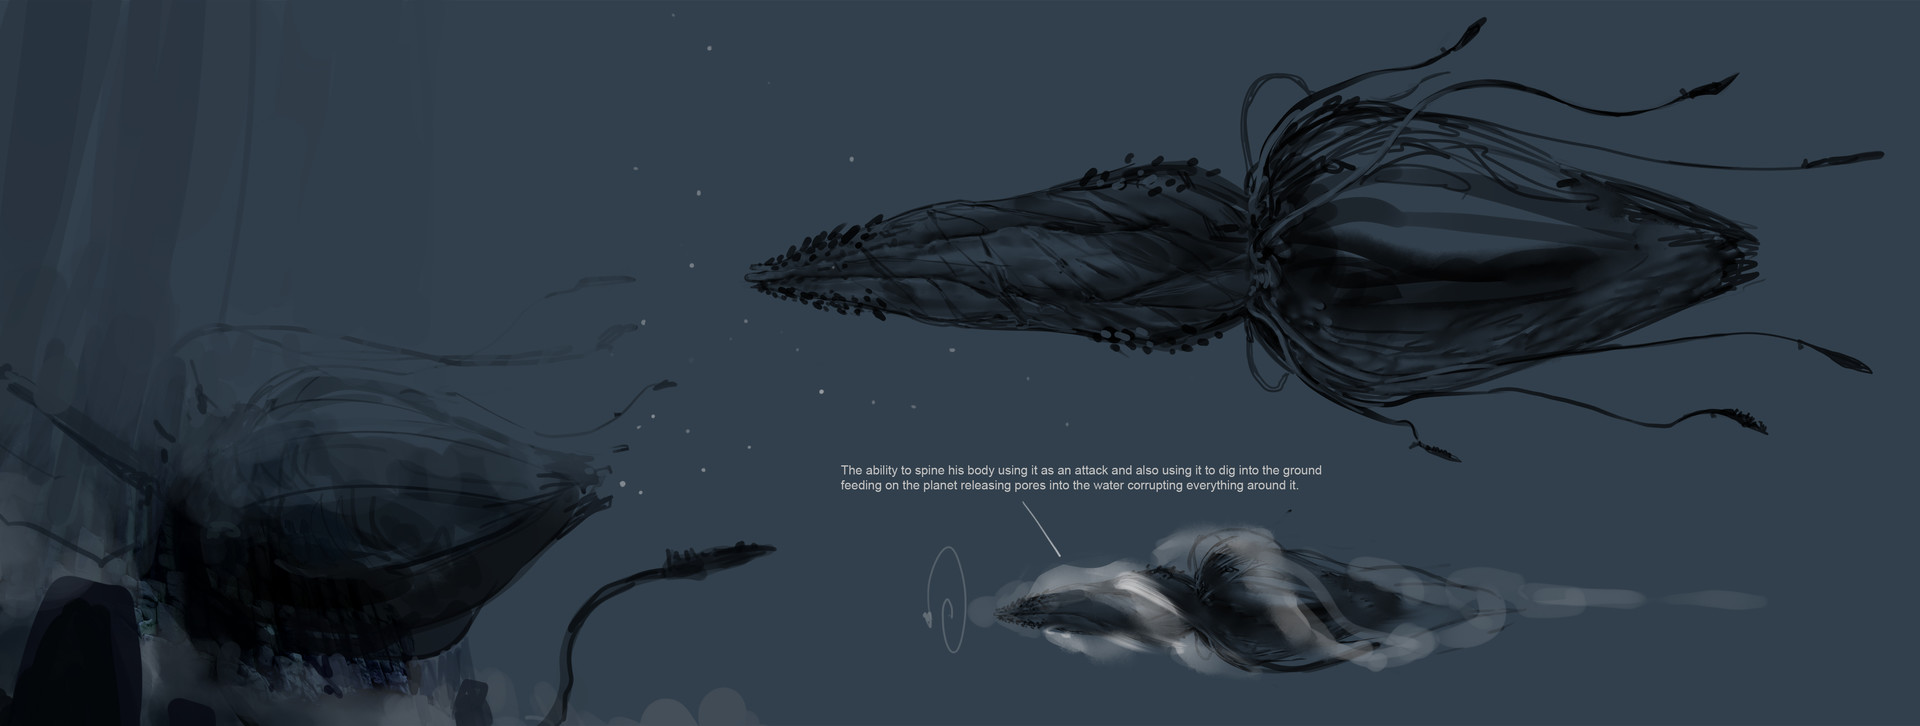 Tyler ryan thedepth creature sketches v06